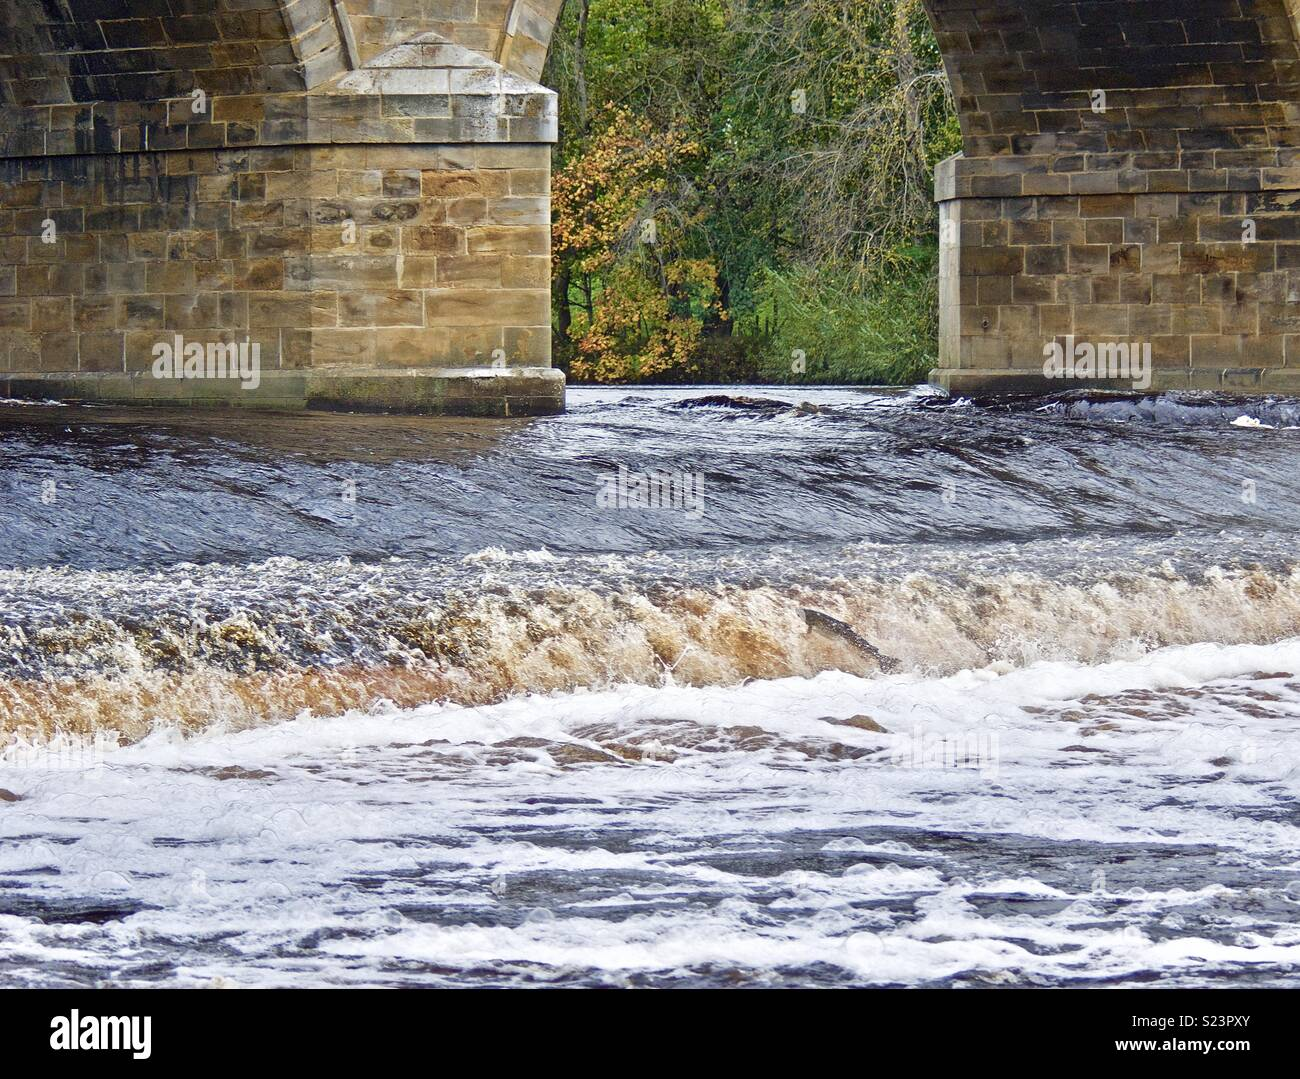 Leaping Salmon - Stock Image